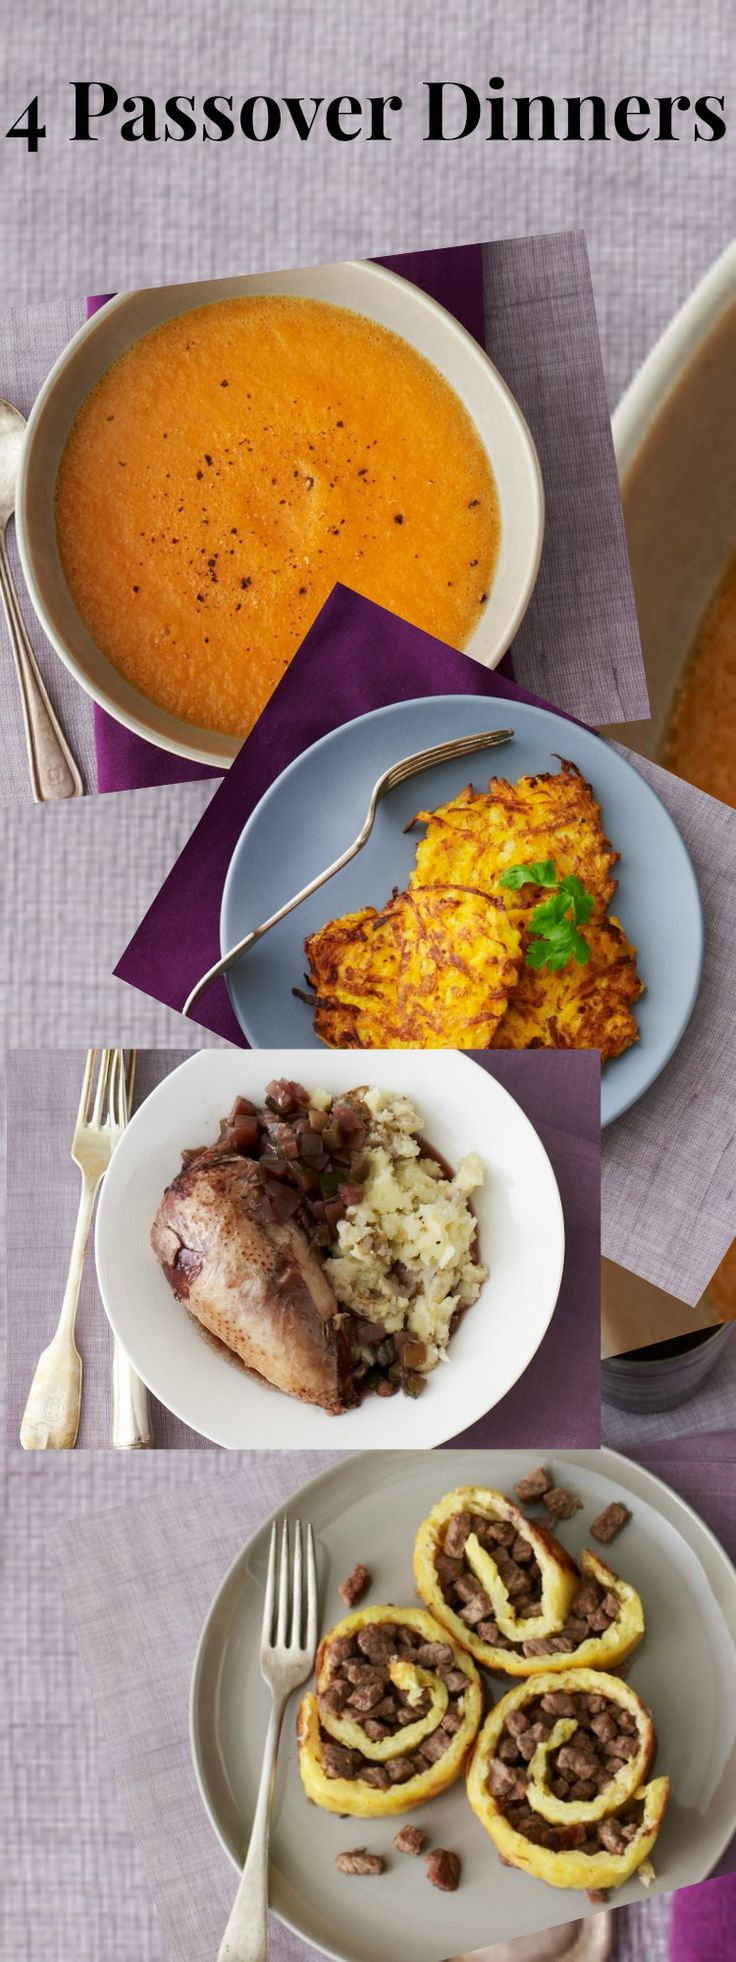 Passover Dinner Tonight Recipes perfect for now and during.Dinner Recipe